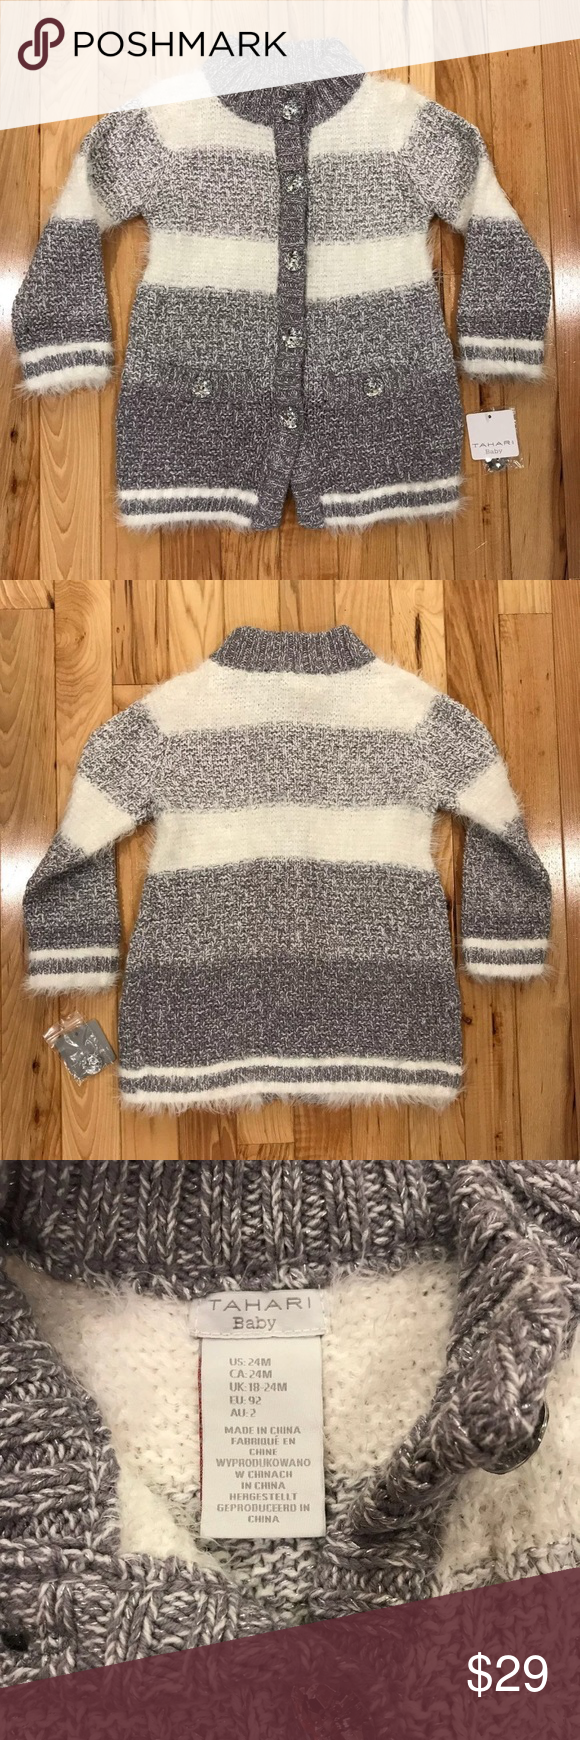 9b4fb984f9f4 🆕 Tahari Baby Fuzzy Cardigan Sweater 24 Months New with tags Tahari ...